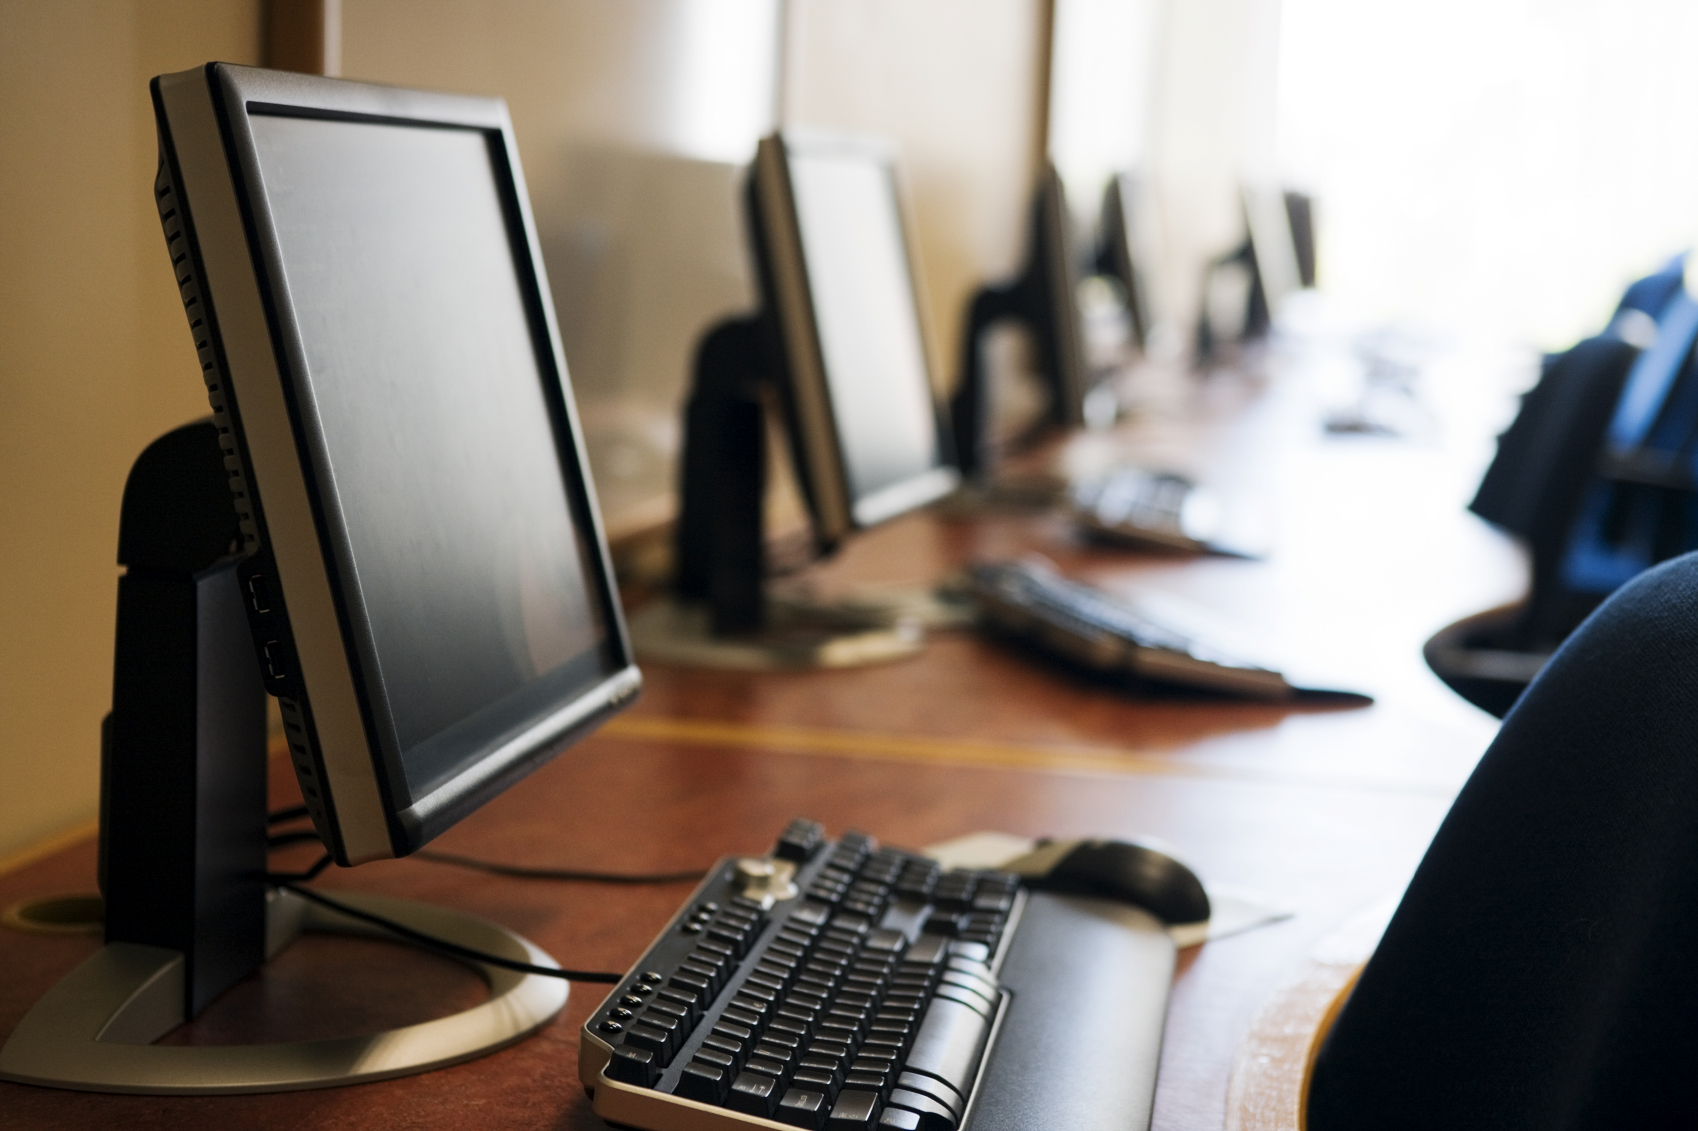 sysols sets required for this current it industry which also prepares them for industry leading certification and equips them marketable it job skills